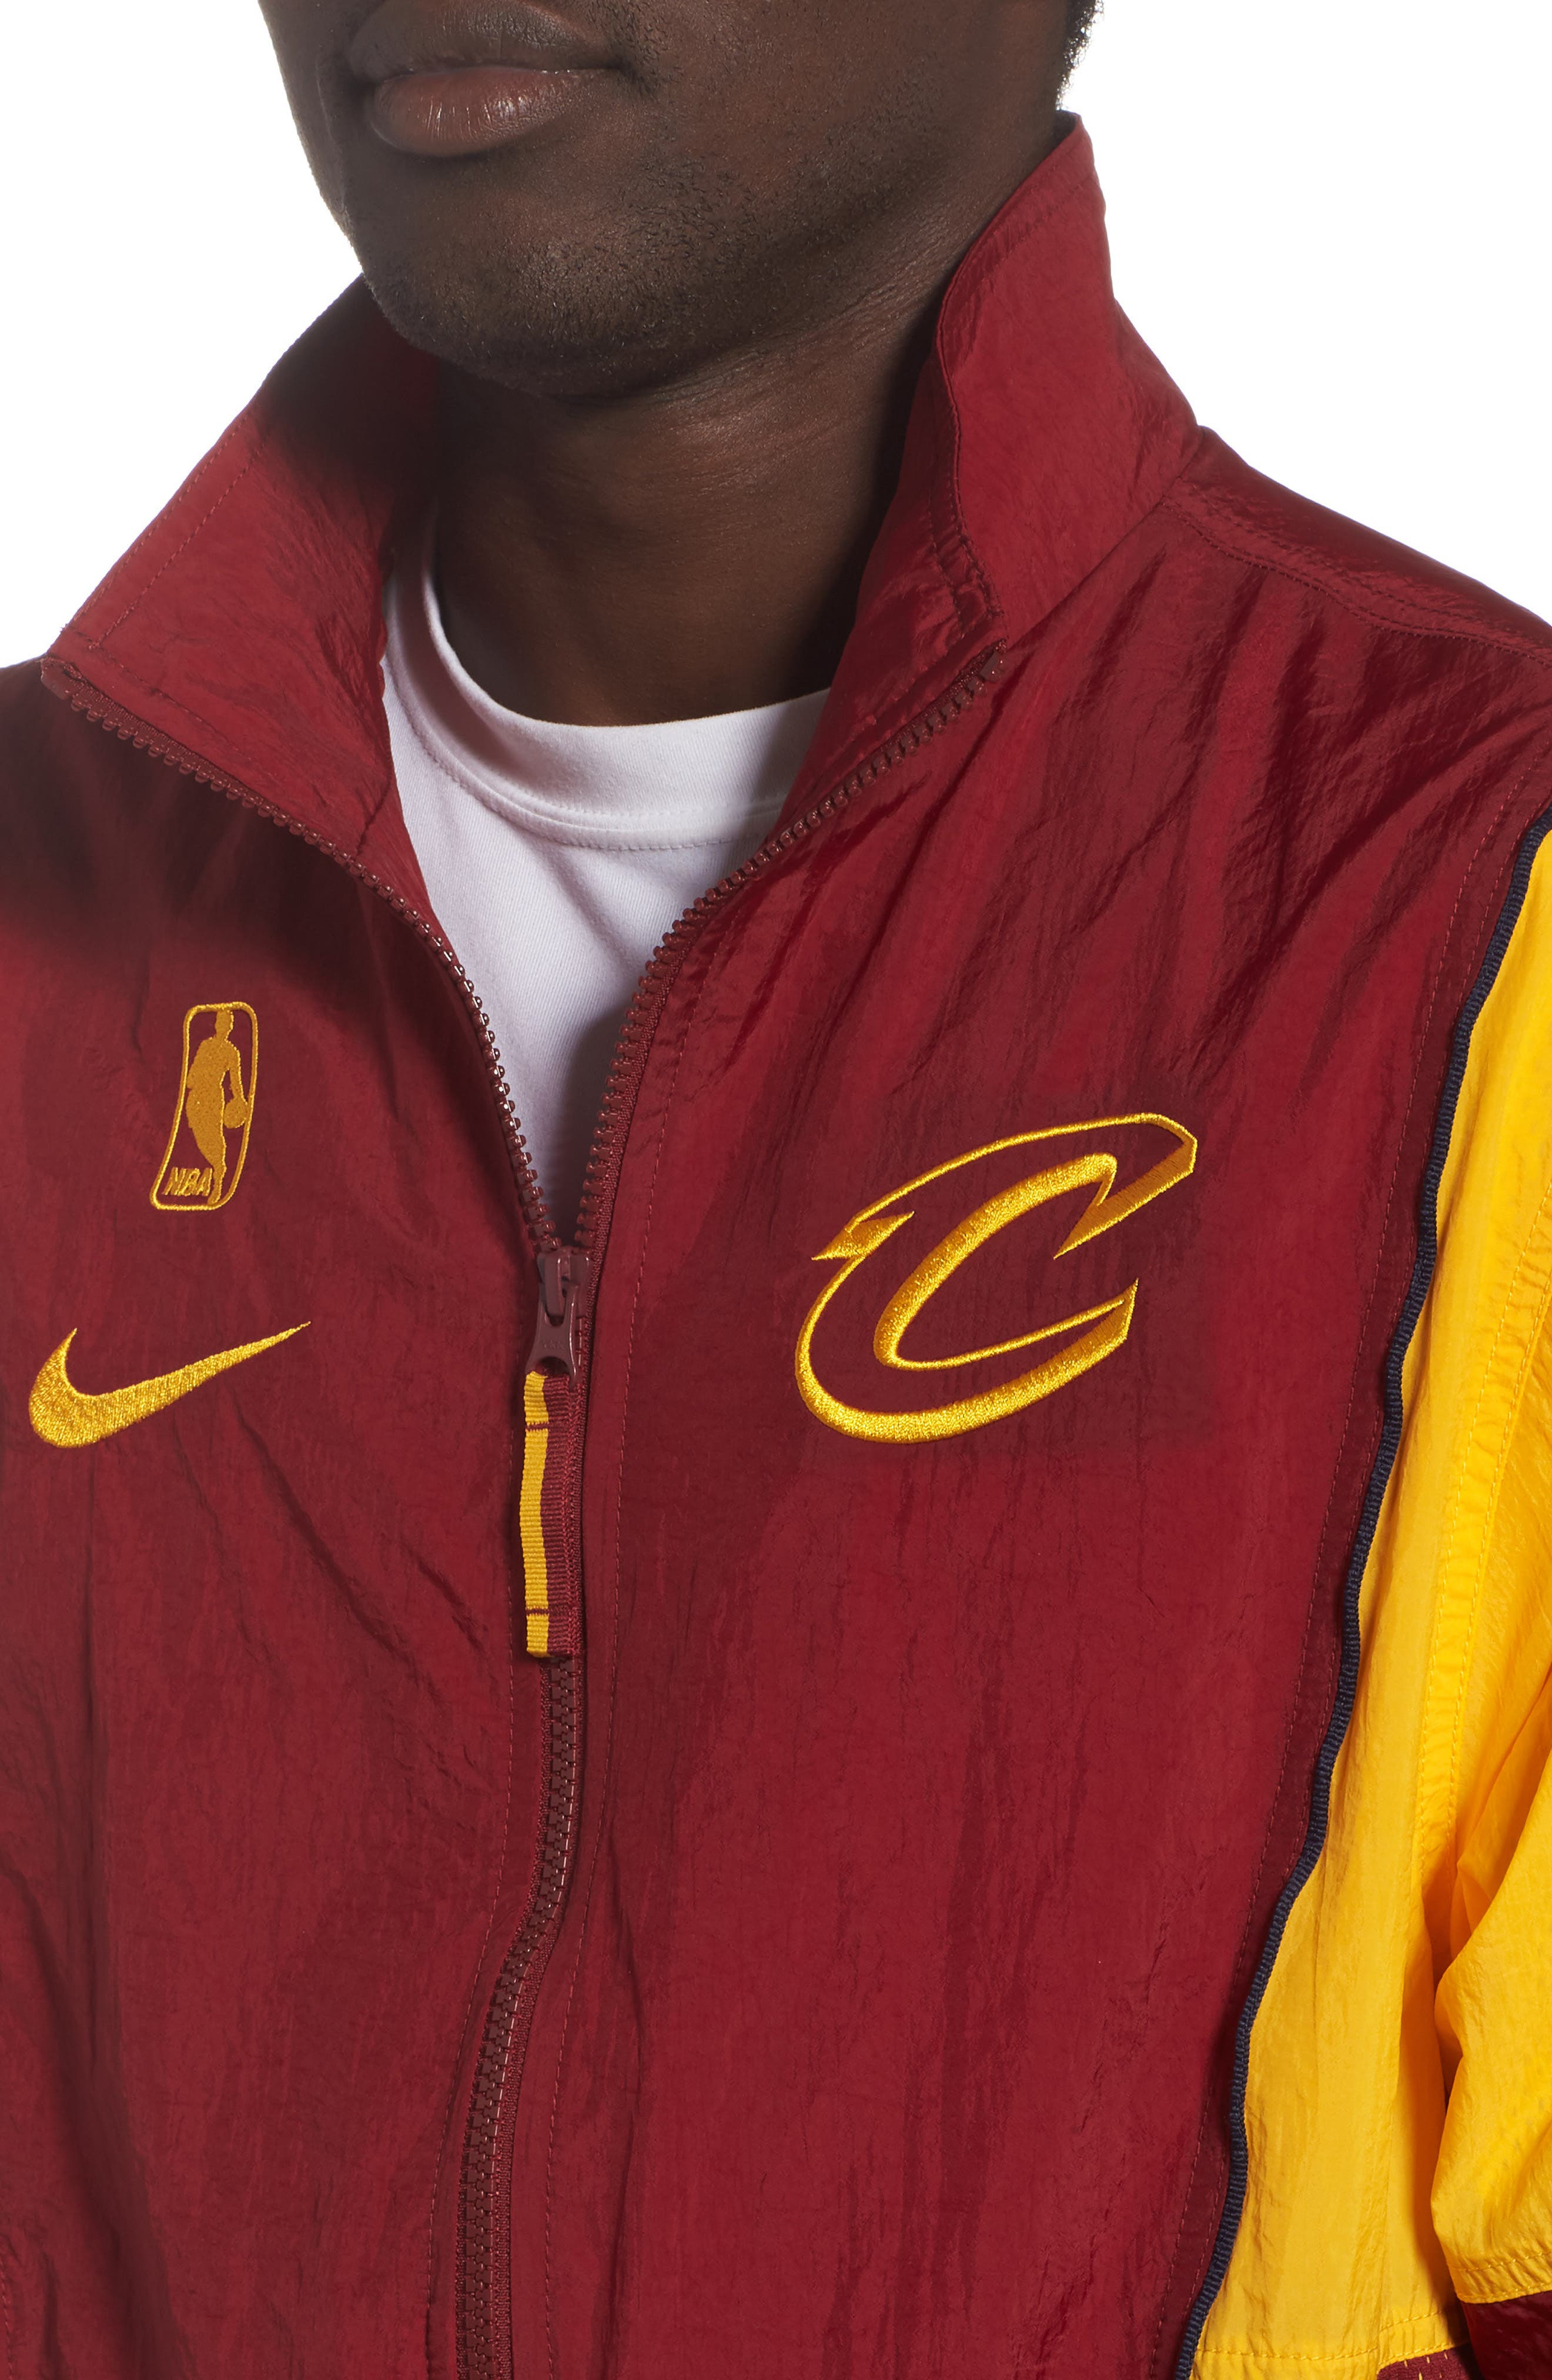 Cleveland Cavaliers Track Jacket,                             Alternate thumbnail 4, color,                             TEAM RED/ UNIVERSITY GOLD